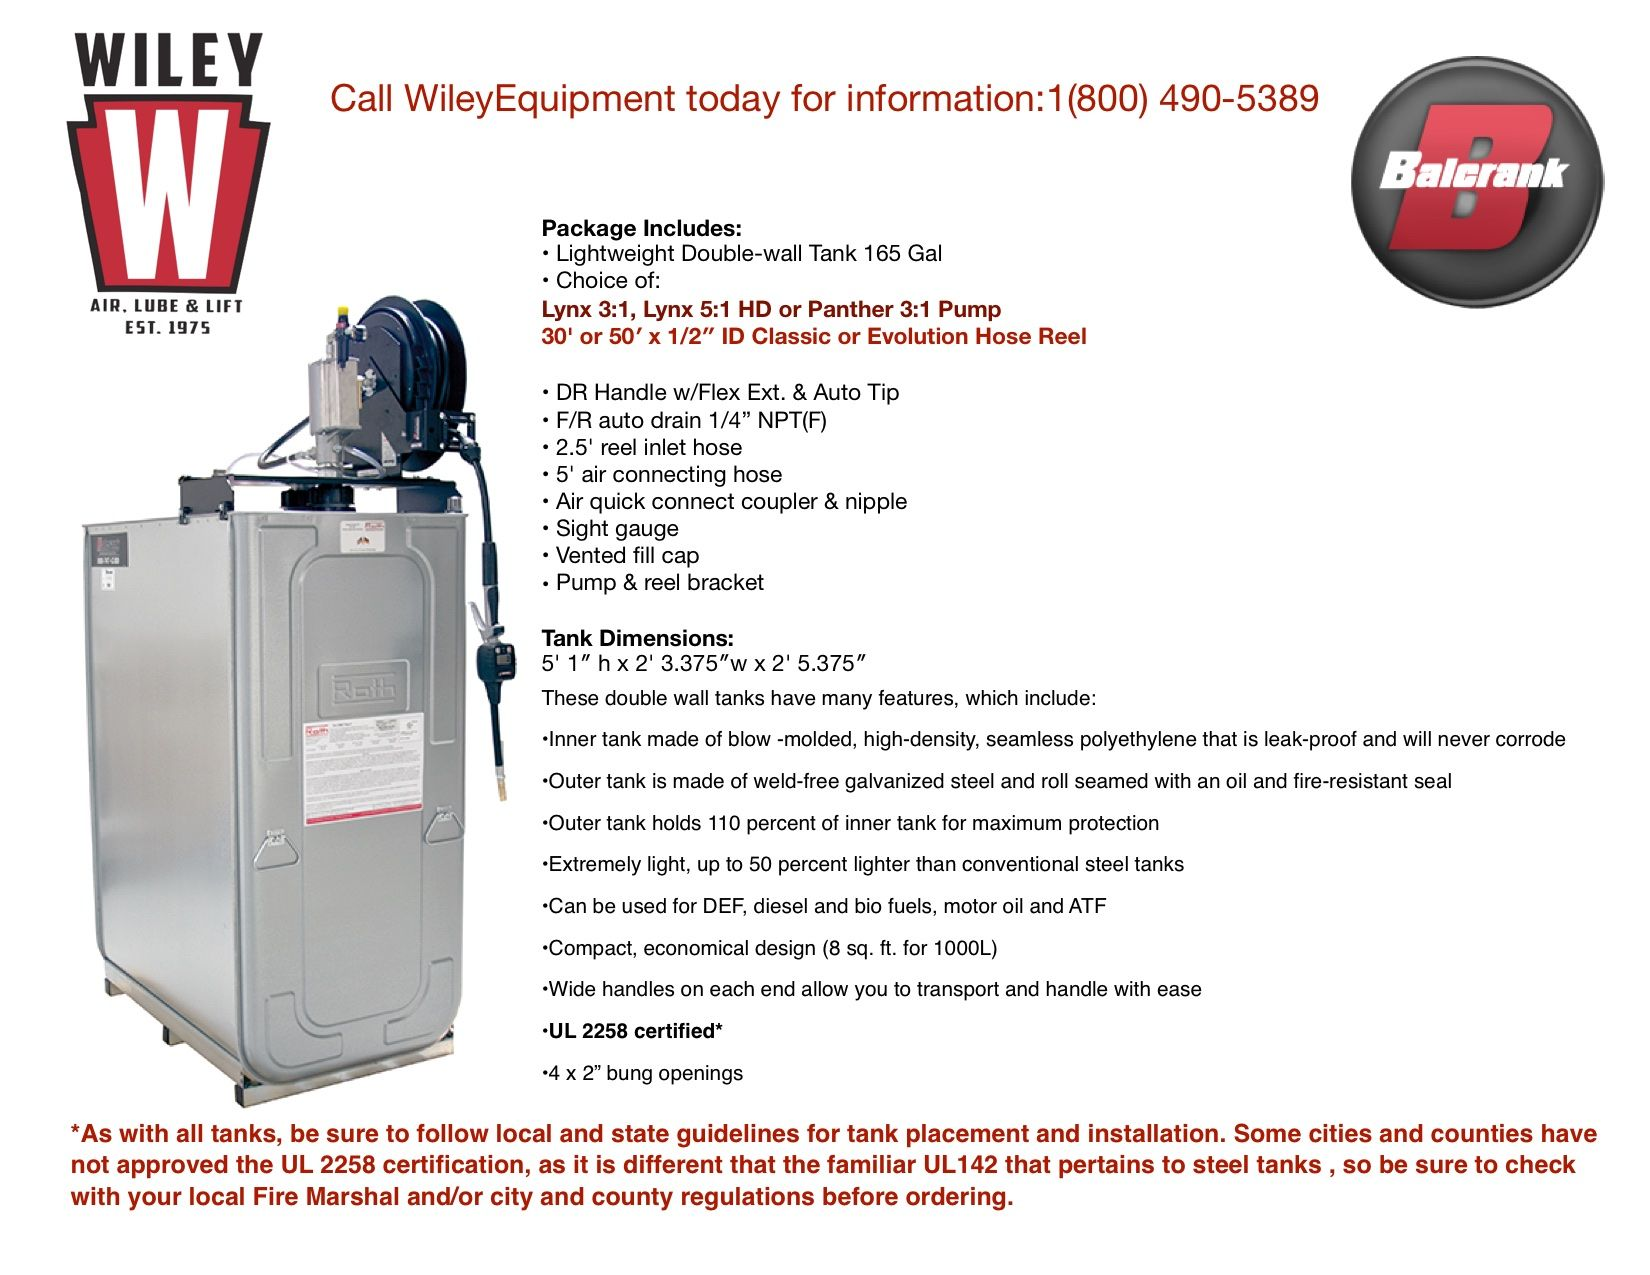 Pin by Wiley Equipment Company on Balcrank Lube, Hose